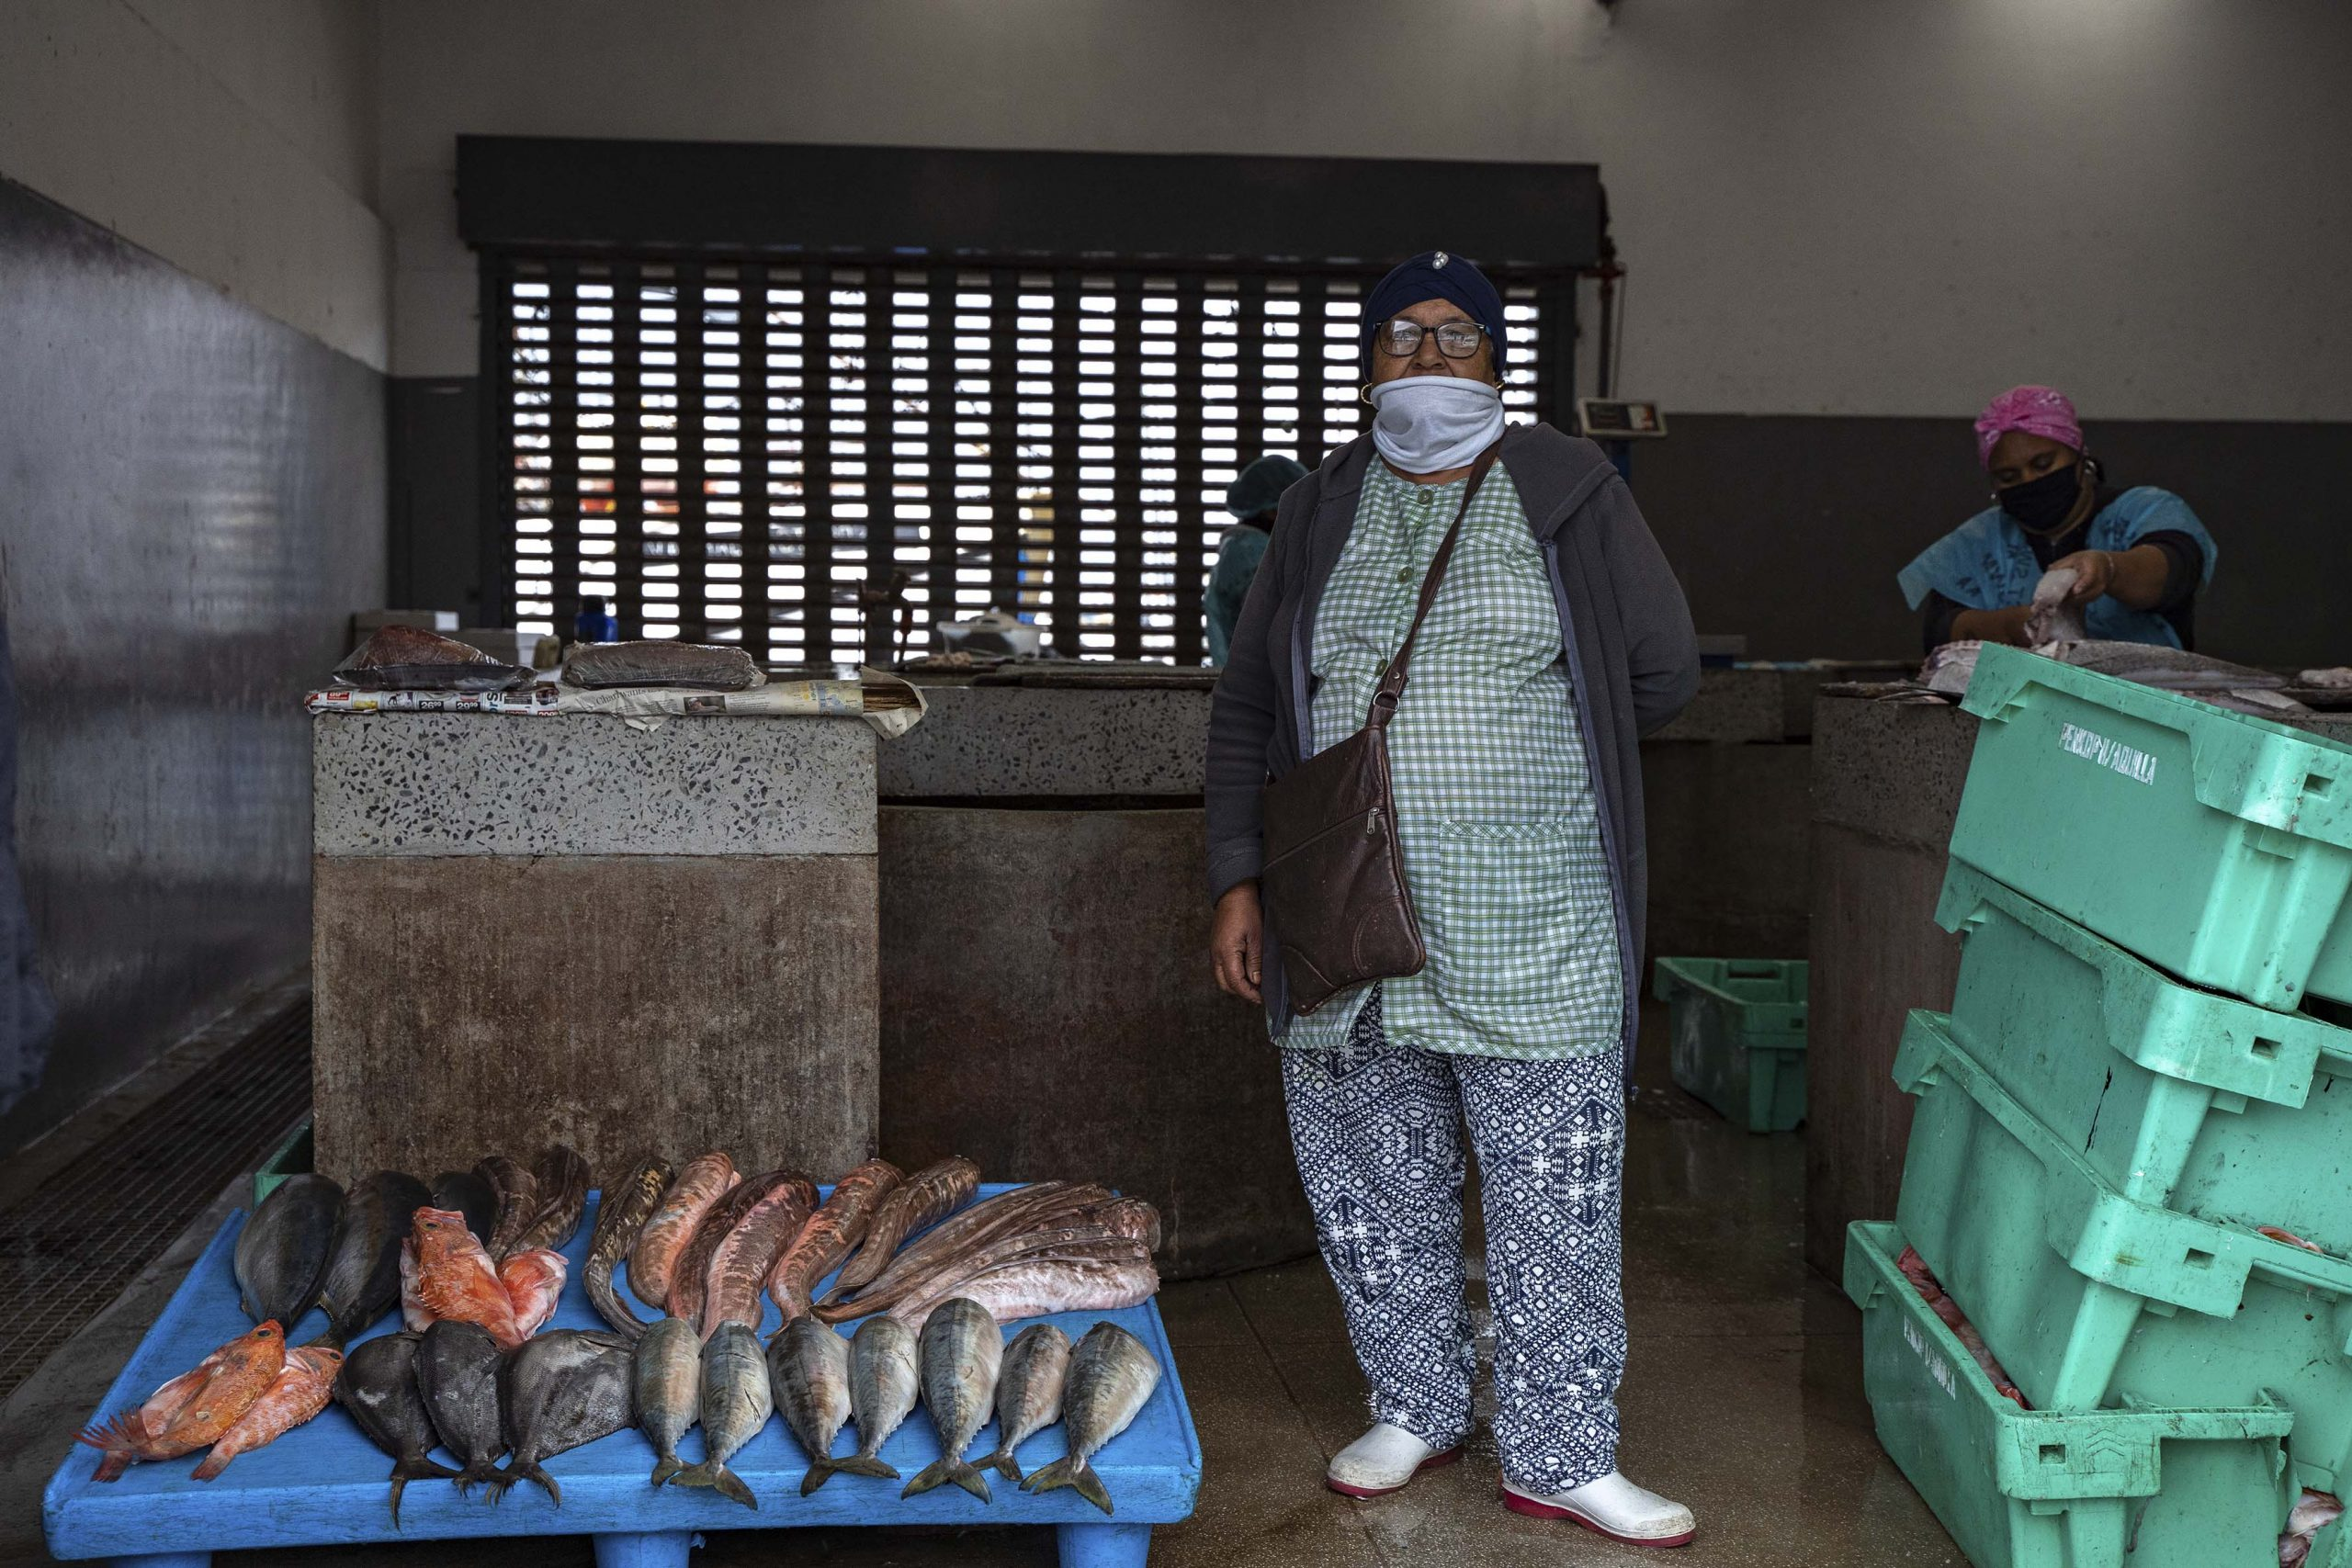 27 June 2020: Nadeema Jacobs, Ginola Phillips' grandmother, has lived in Hangberg for 59 years and sells fish at Hout Bay Harbour. She employs a number of people and Phillips works for her on weekends. The Covid-19 lockdown has reduced her already meagre earnings.